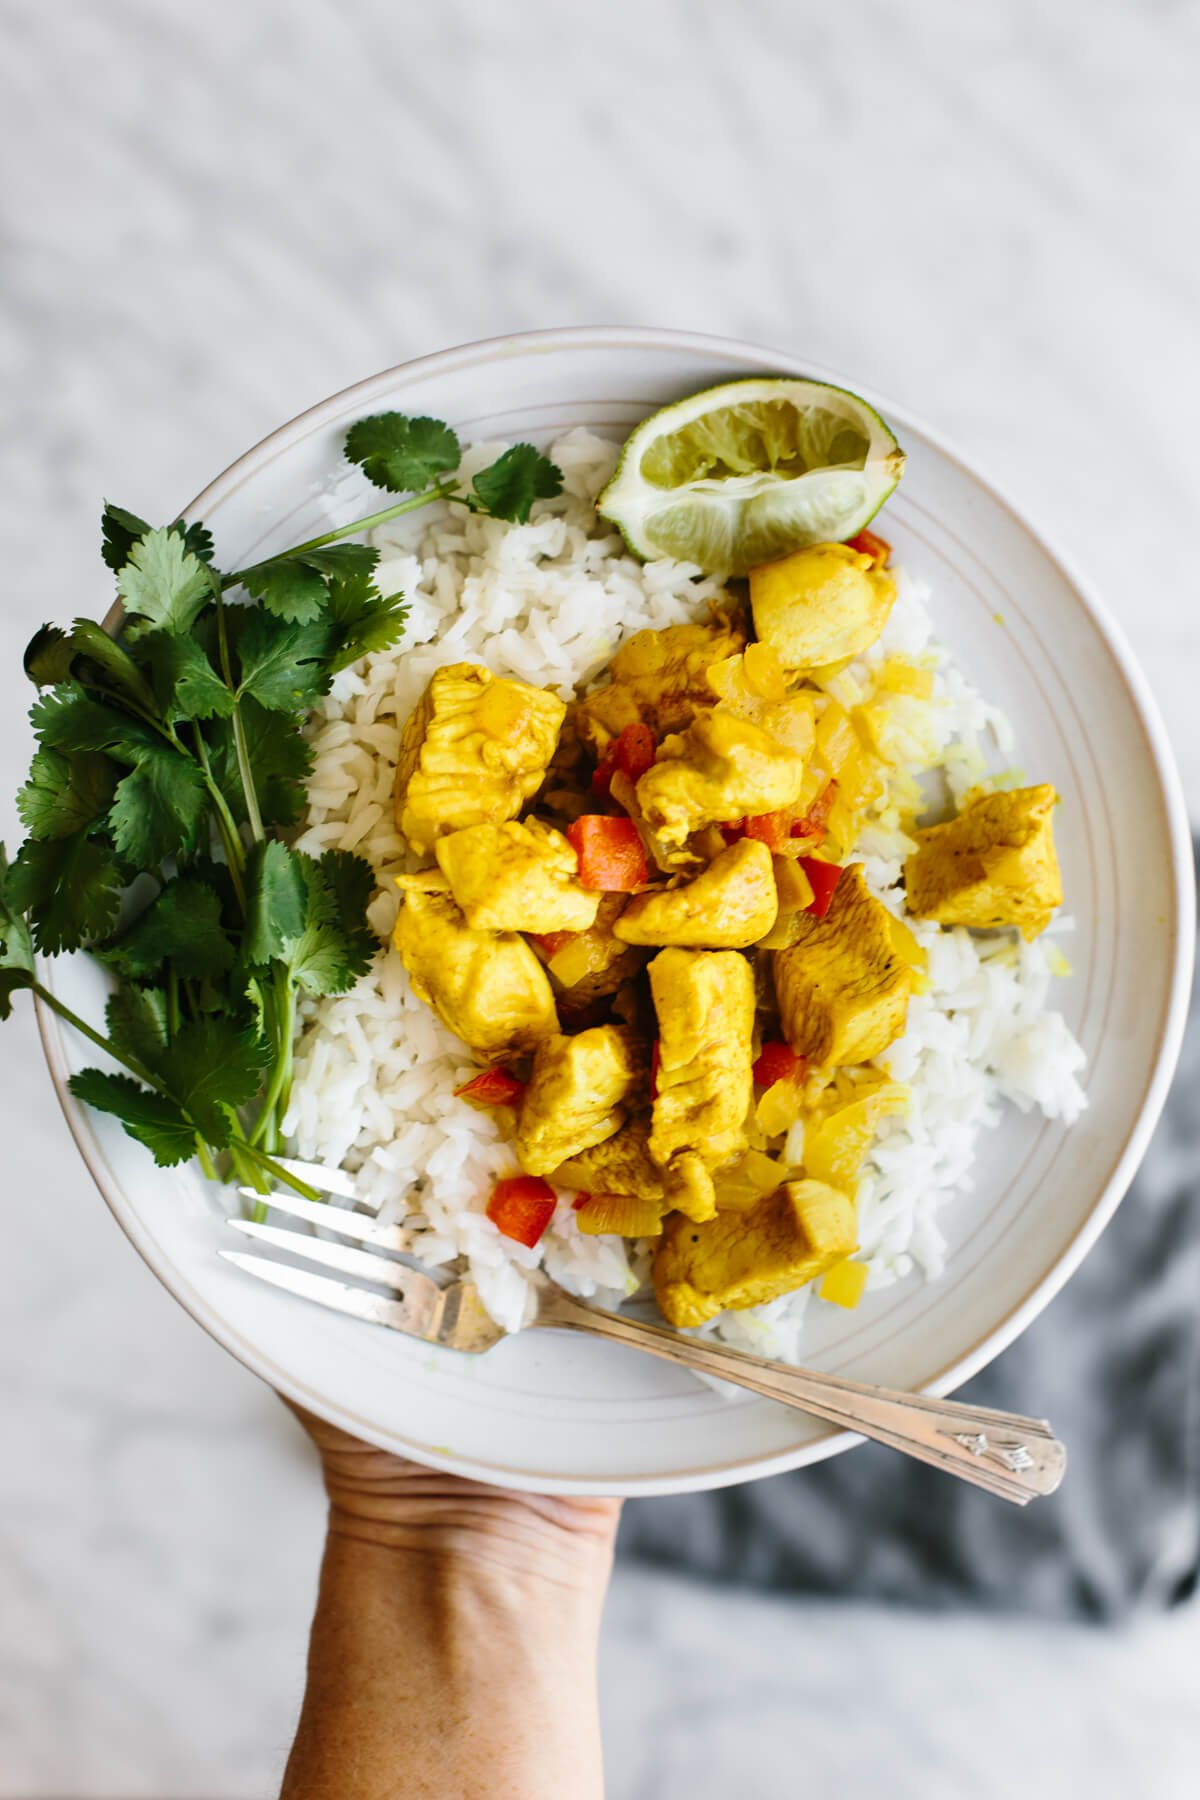 A serving of coconut curry chicken on a plate.